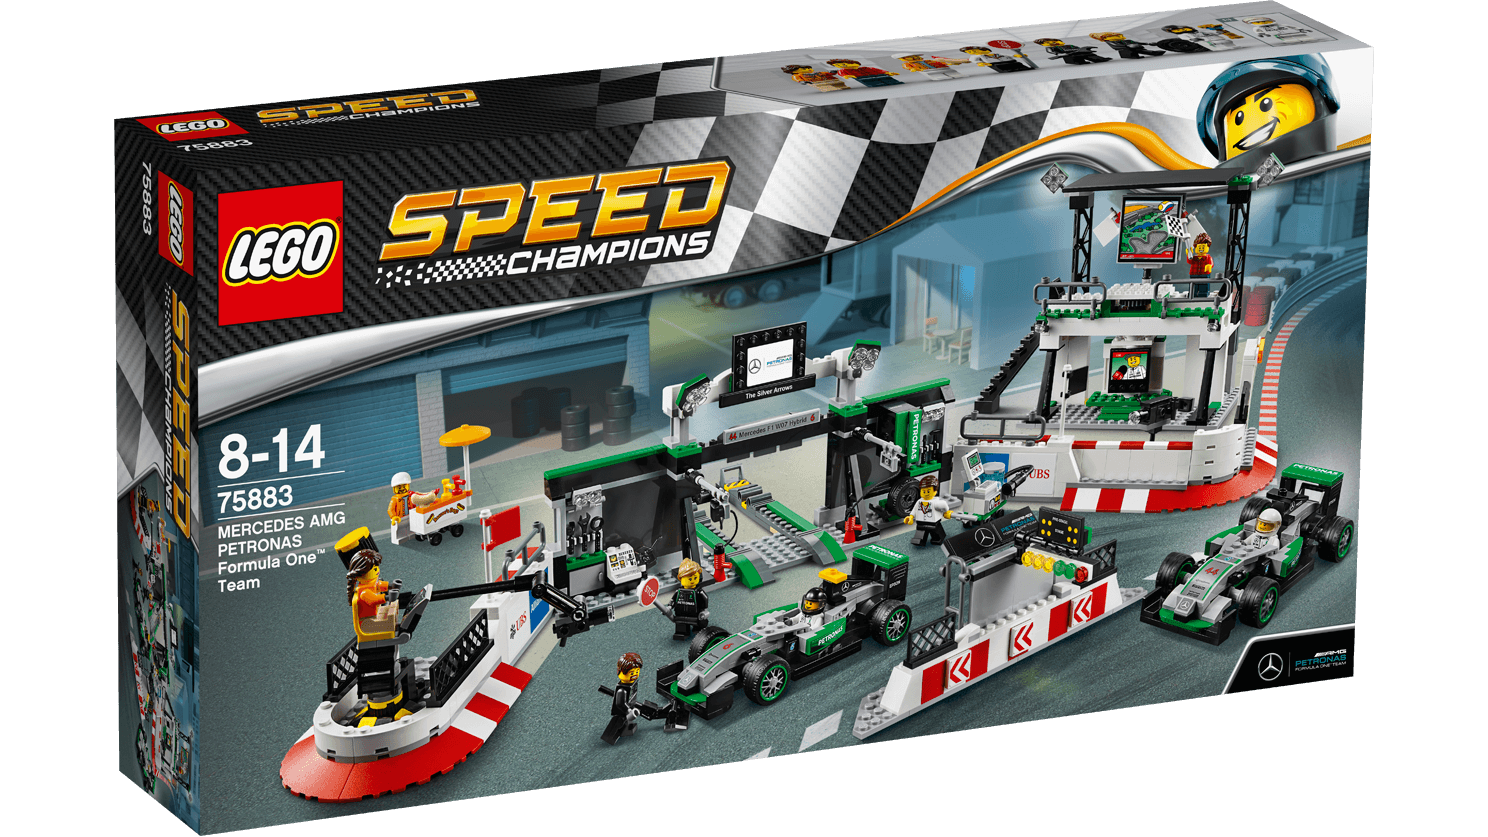 Lego Speed Champions MERCEDES AMG PETRONAS Formula One™ Team